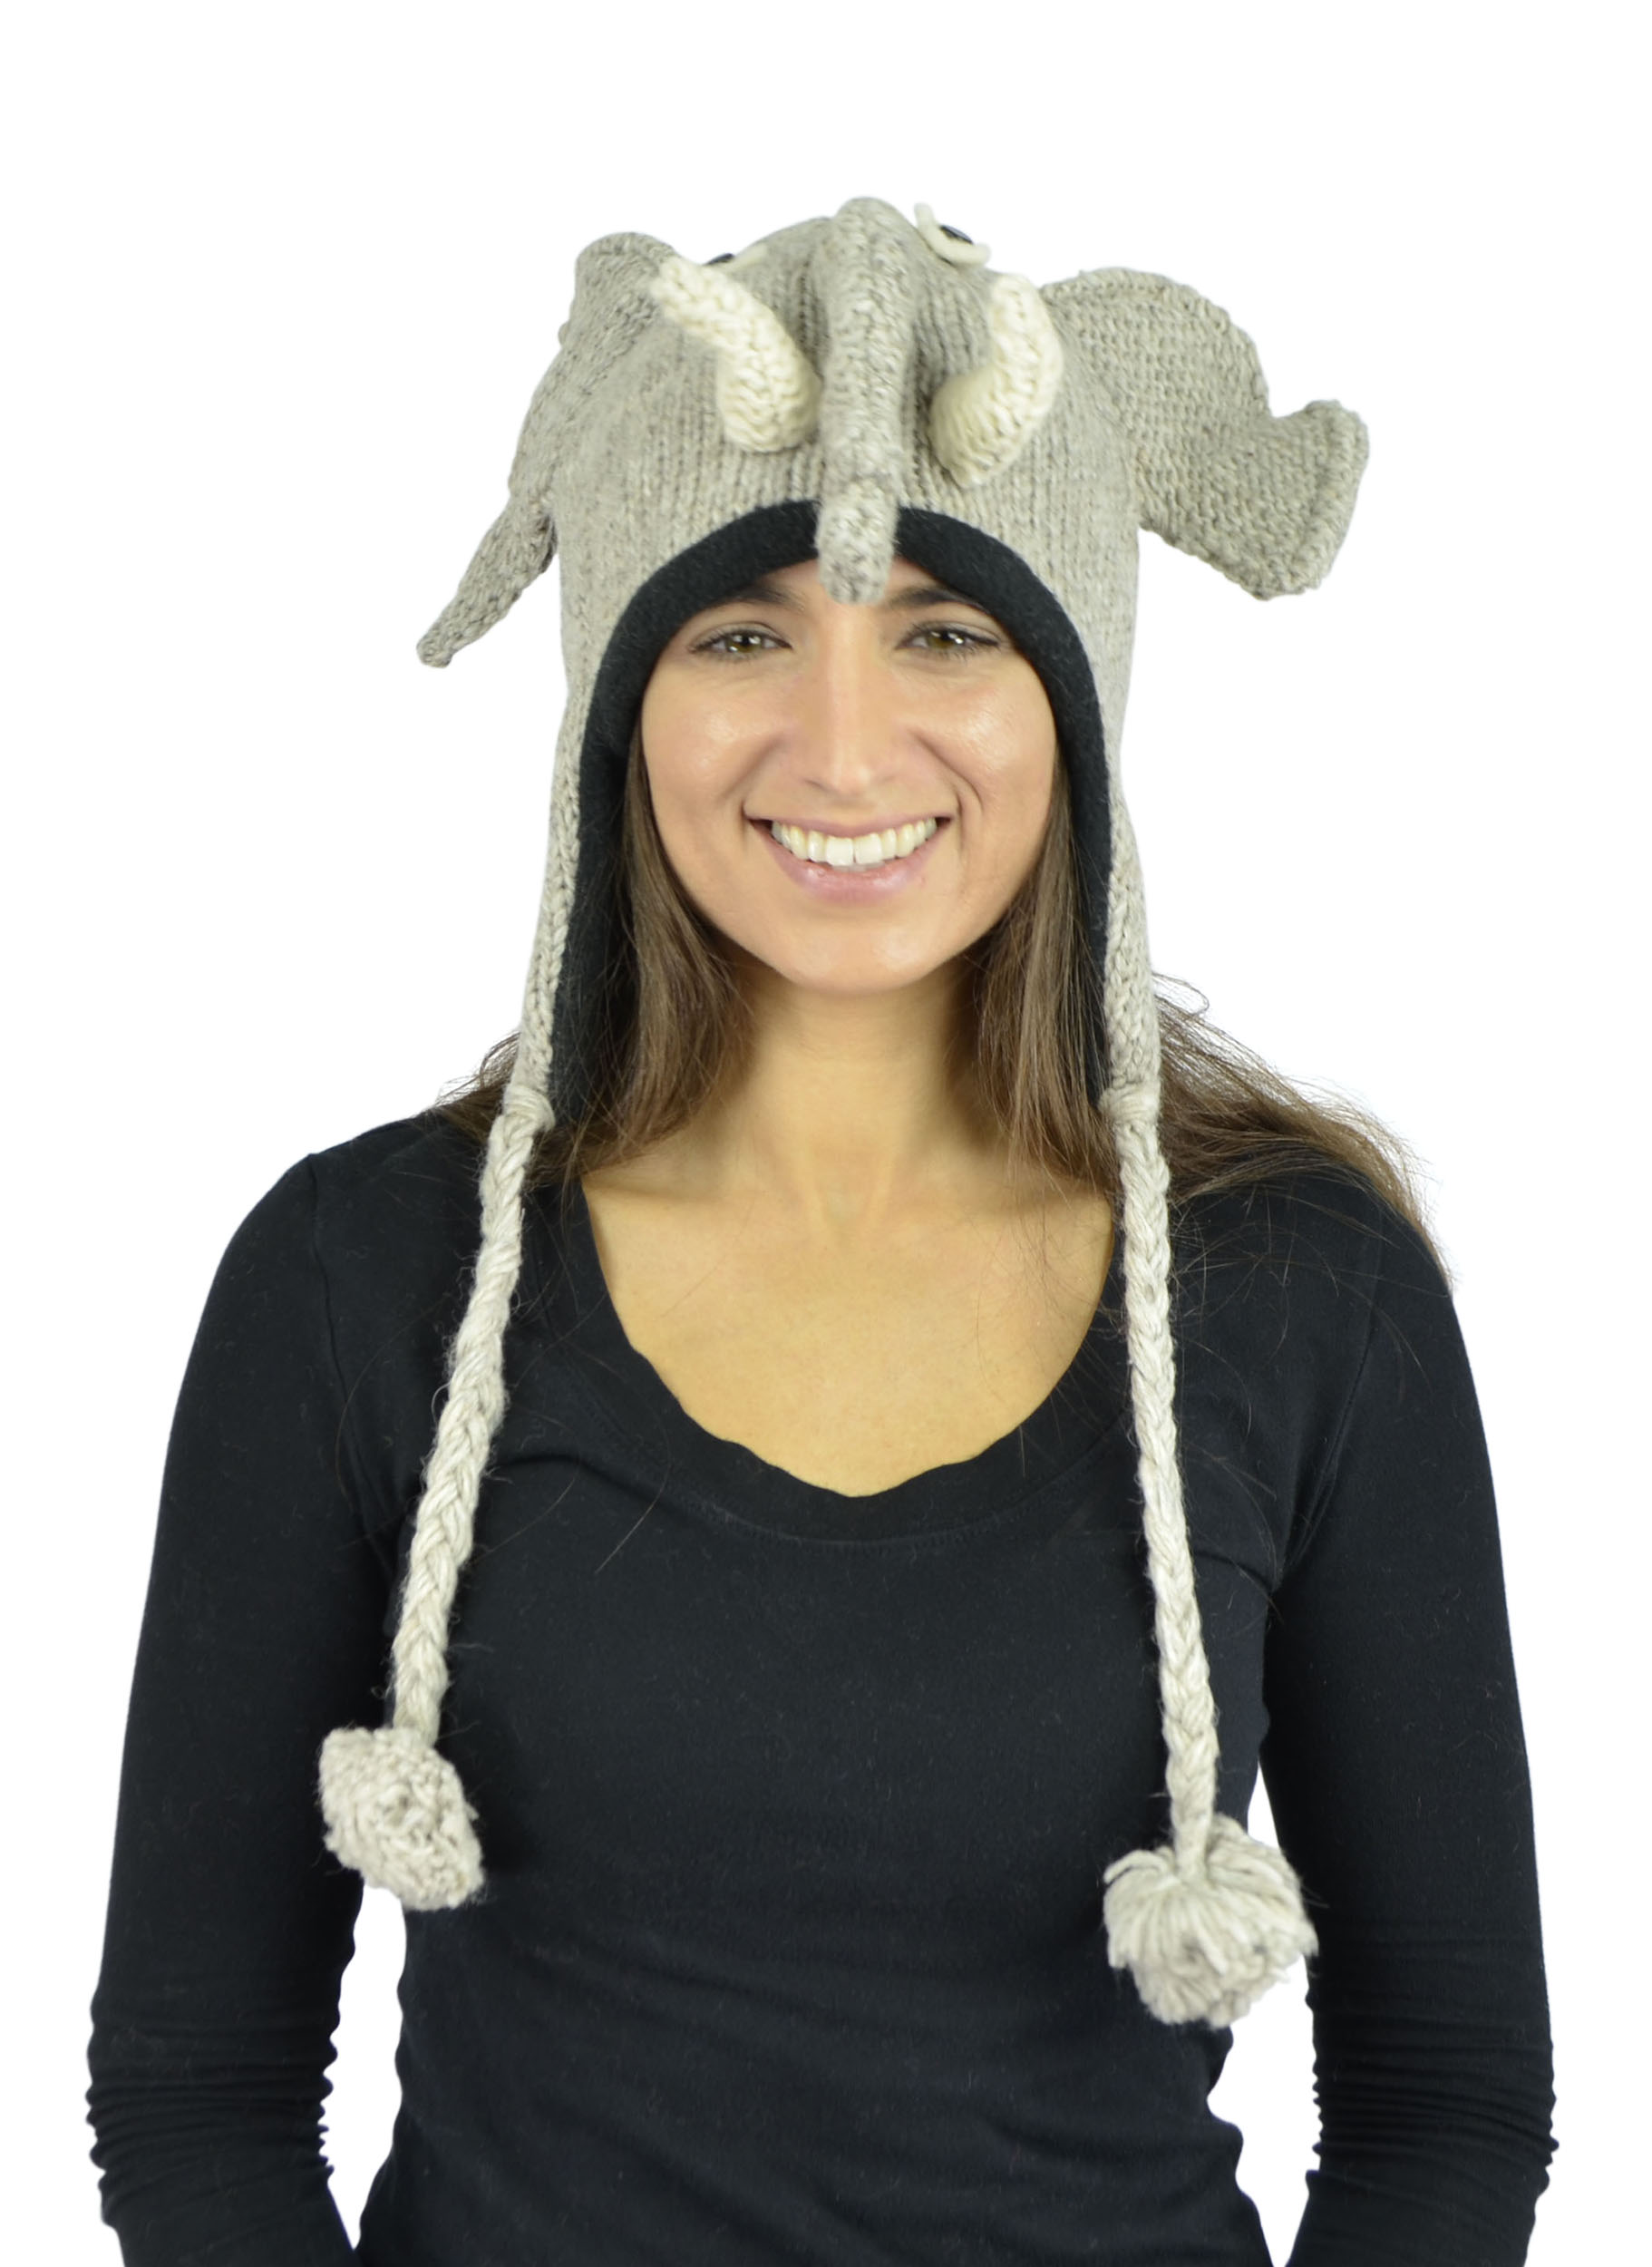 Belle Donne - Unisex Winter Knit Elephant Animal Hats With Pom Pom - Gray